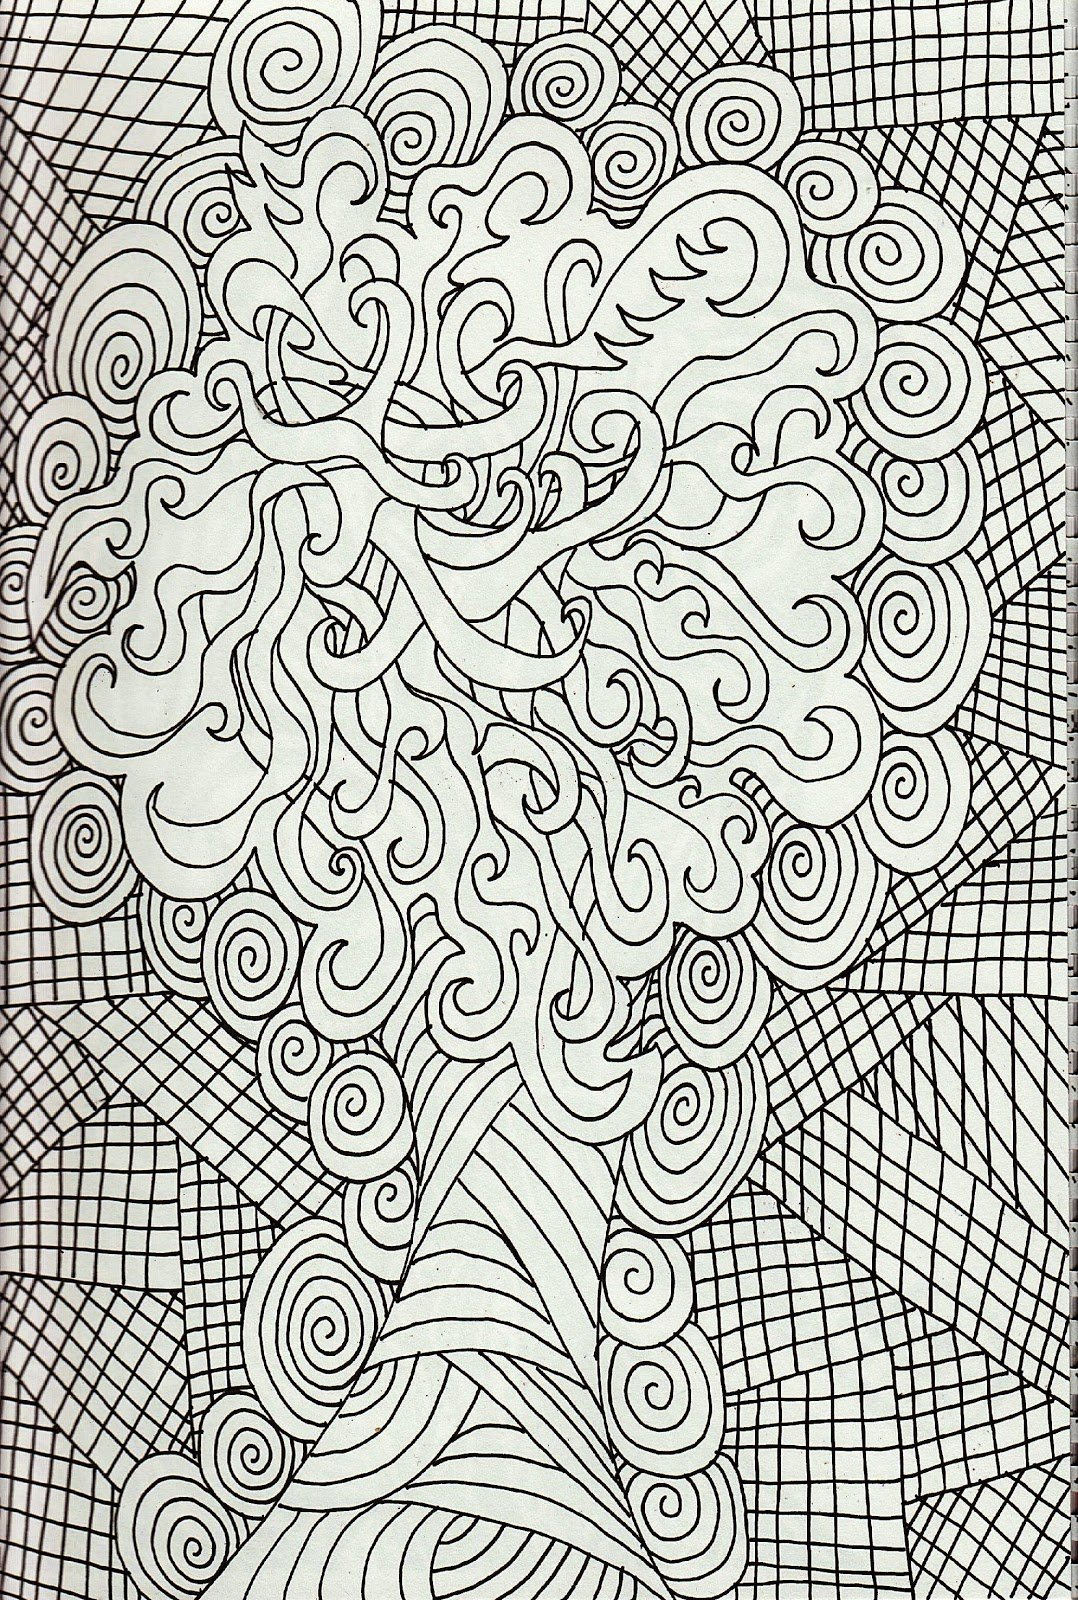 Free-Printable-Coloring-Pages-For-Adults-Advanced-Dragons-Adult - Free Printable Coloring Pages For Adults Advanced